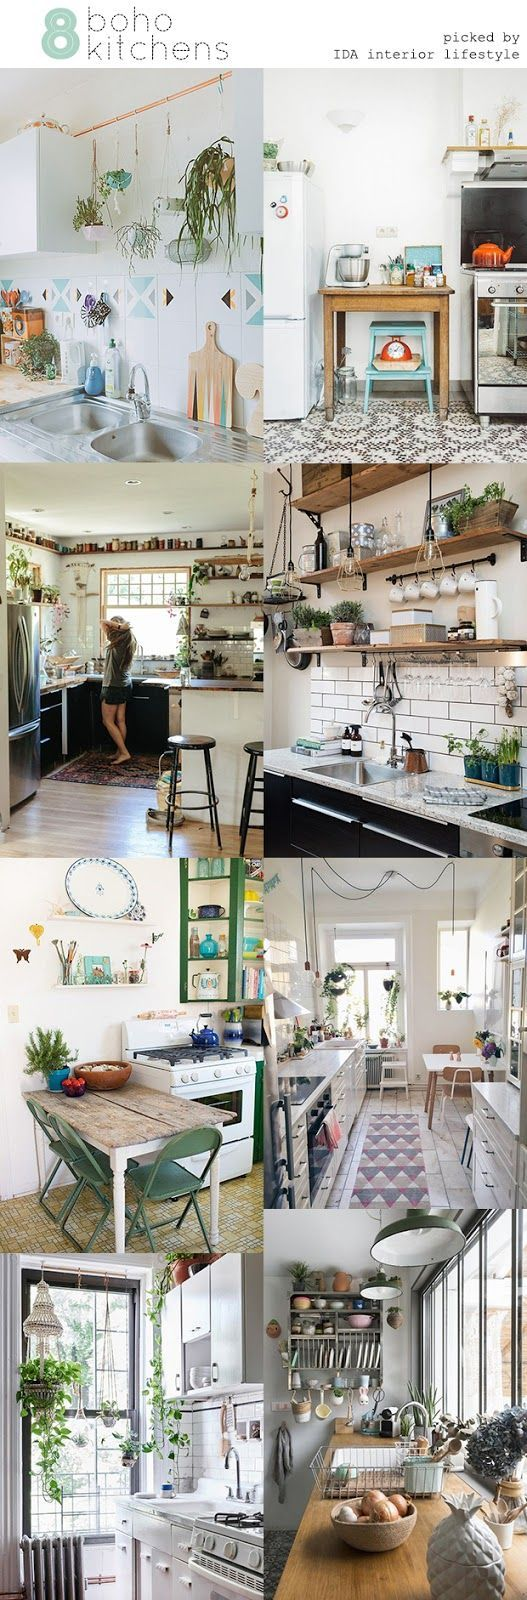 25 gorgeous gypsy drawing ideas on pinterest gypsy girl tattoos peacock sketch and sketch - Inspiring dining room interior design ideas you must try ...